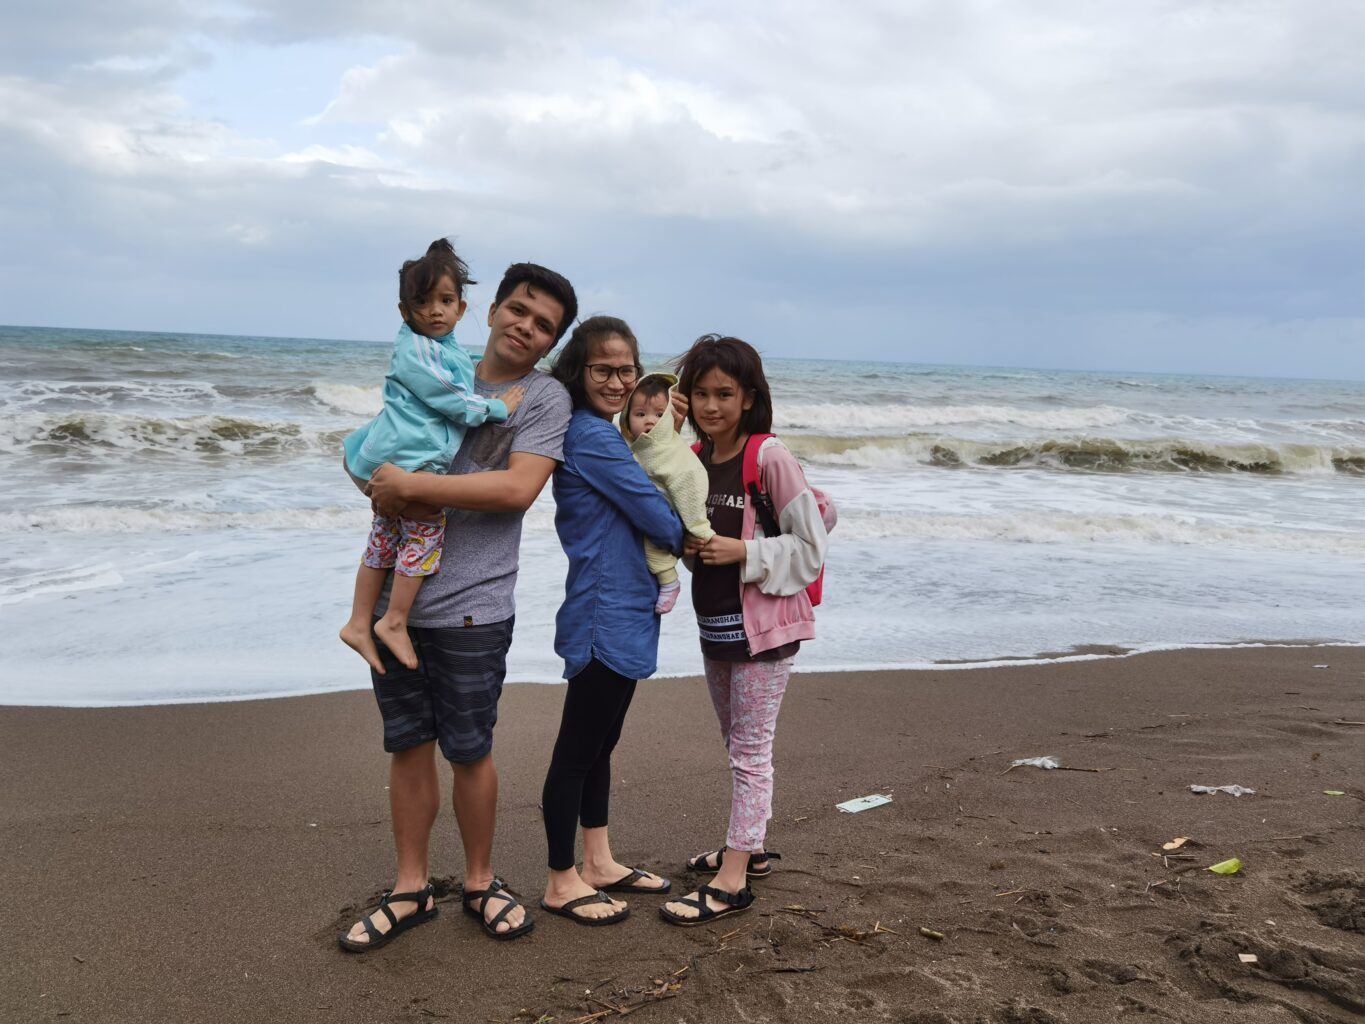 If you have kids in your family, then Real Quezon is a good place to have a break.